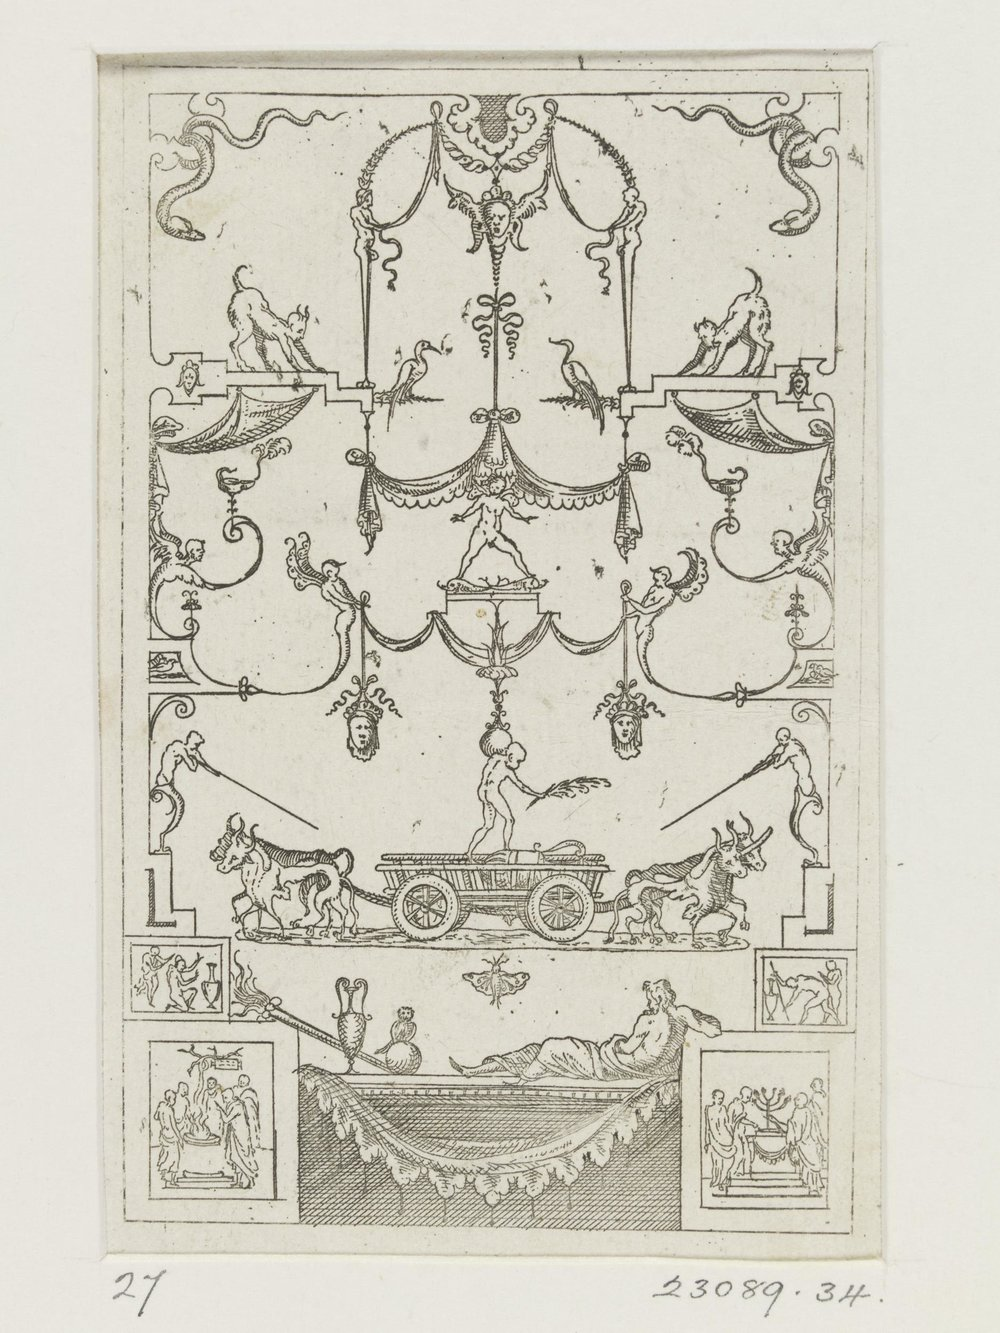 Design for grotesque arabesque panel, etching by Jacques Androuet Du Cerceau, 1550.  From the Victoria and Albert Museum.